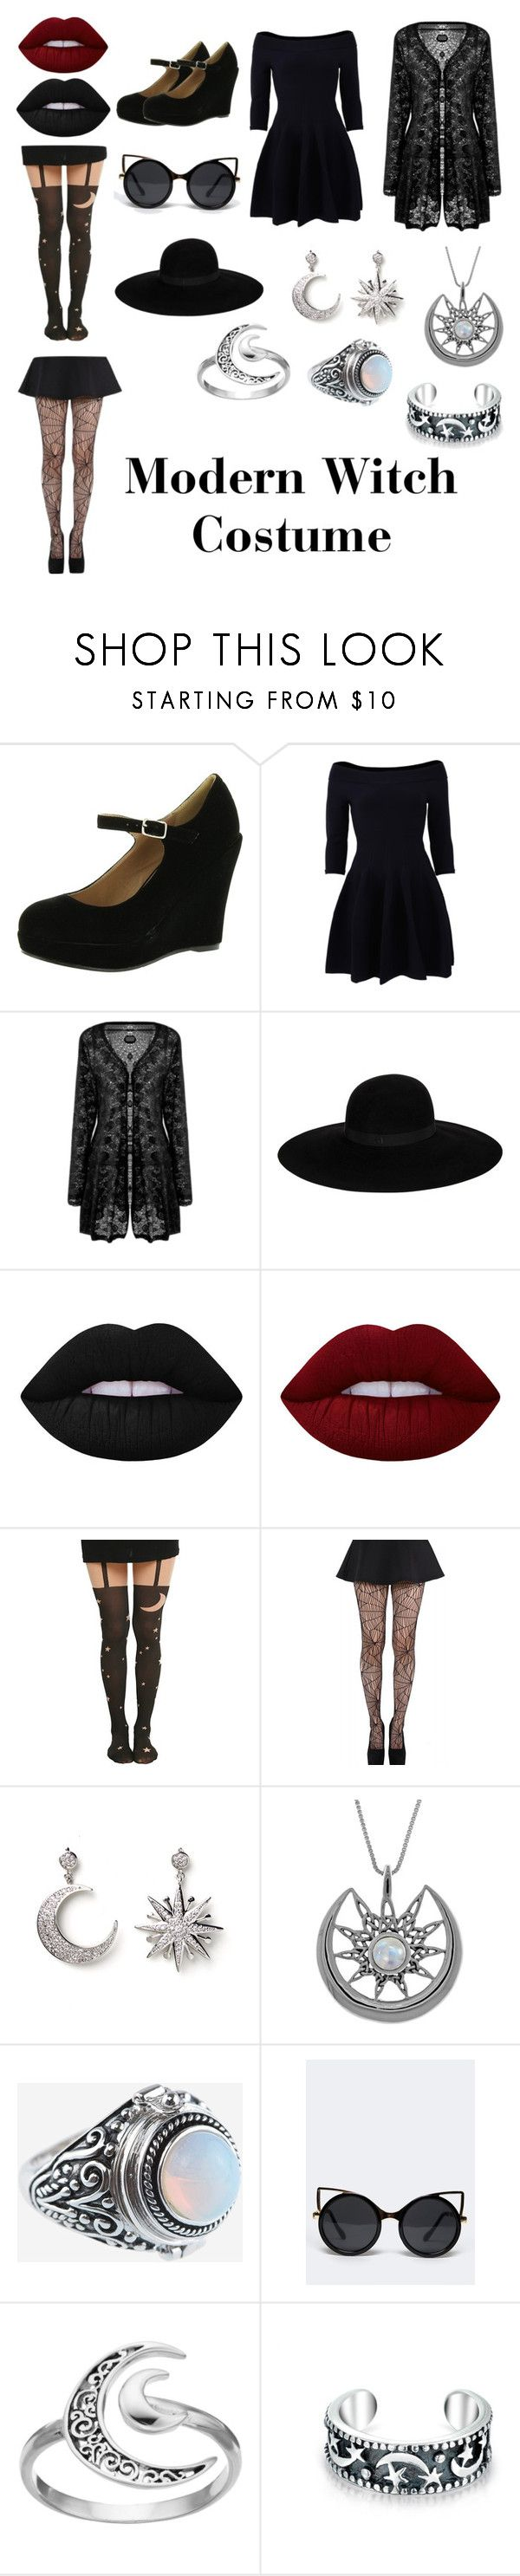 """Modern Witch Costume"" by spookyfinn ❤ liked on Polyvore featuring Bonnibel, Jonathan Simkhai, Maison Michel, Lime Crime, Pamela Mann, Amrita Singh, Carolina Glamour Collection, Rock 'N Rose, ZooShoo and Primrose"